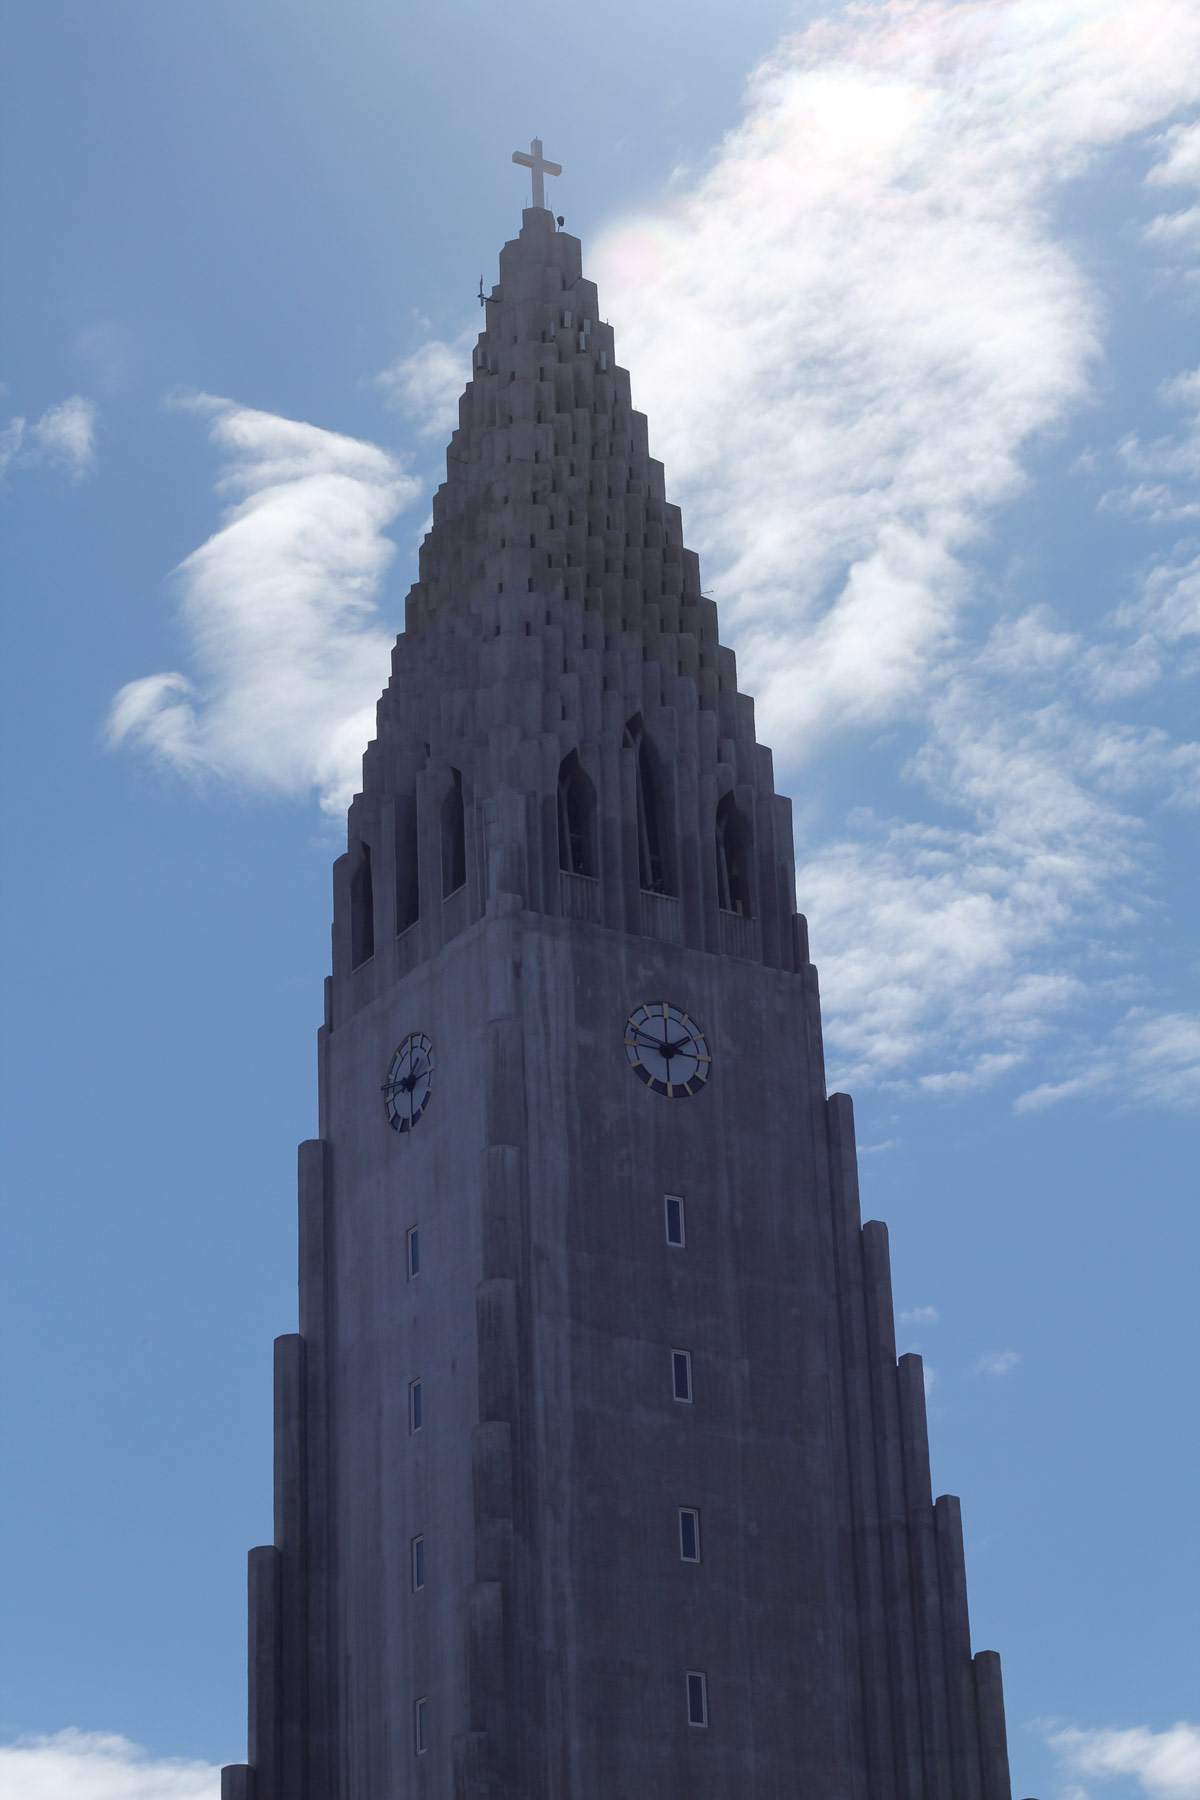 iceland-reykjavik-keflavik-review-photo-diary-travel-blog-church-view